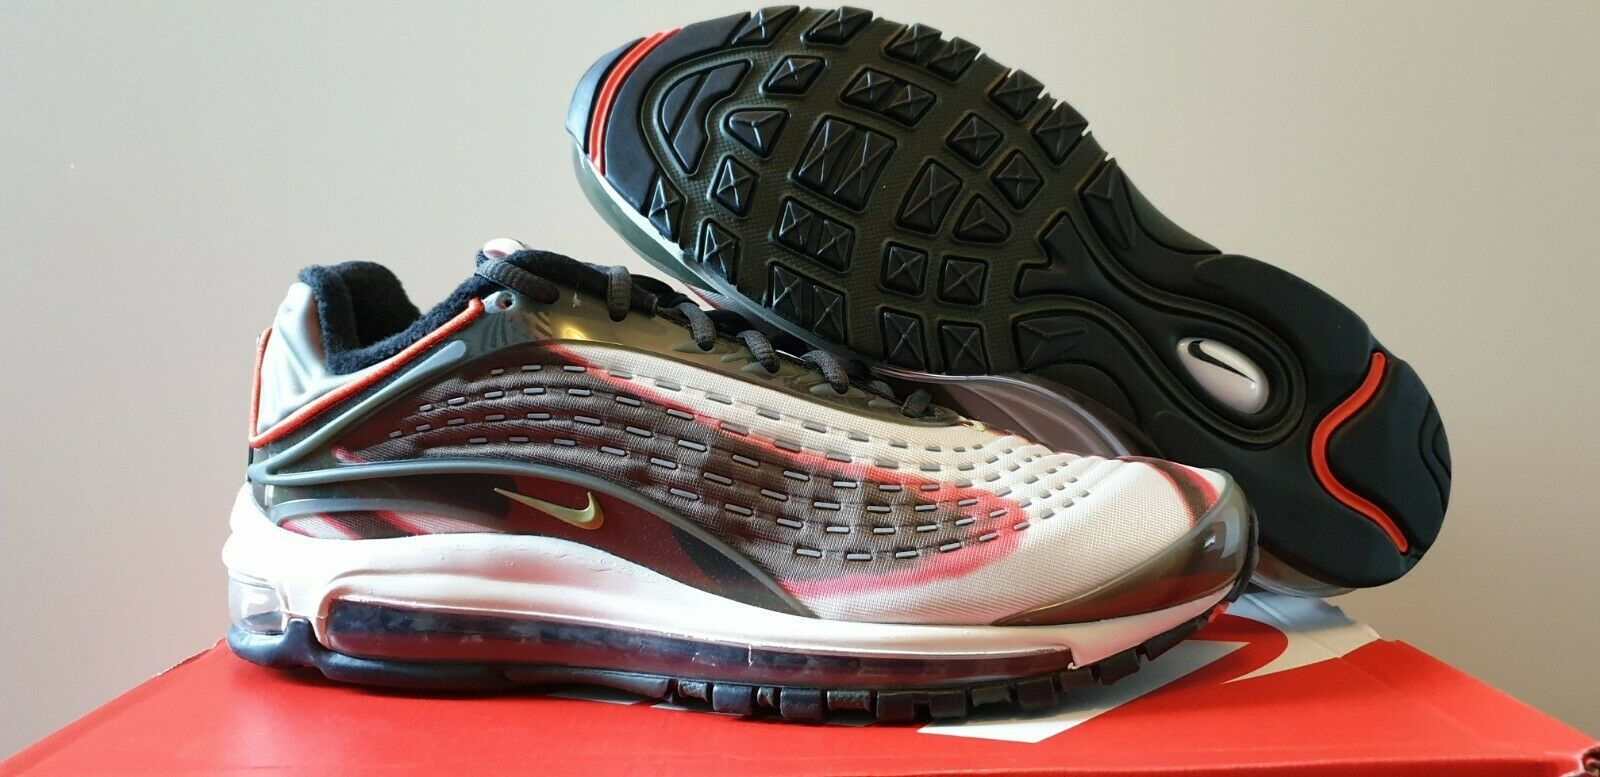 88bcf635fbf09 Nike Air Max Max Max Deluxe 90 Sequoia US 9 10 10.5 11 11.5 Eur 42.5 ...